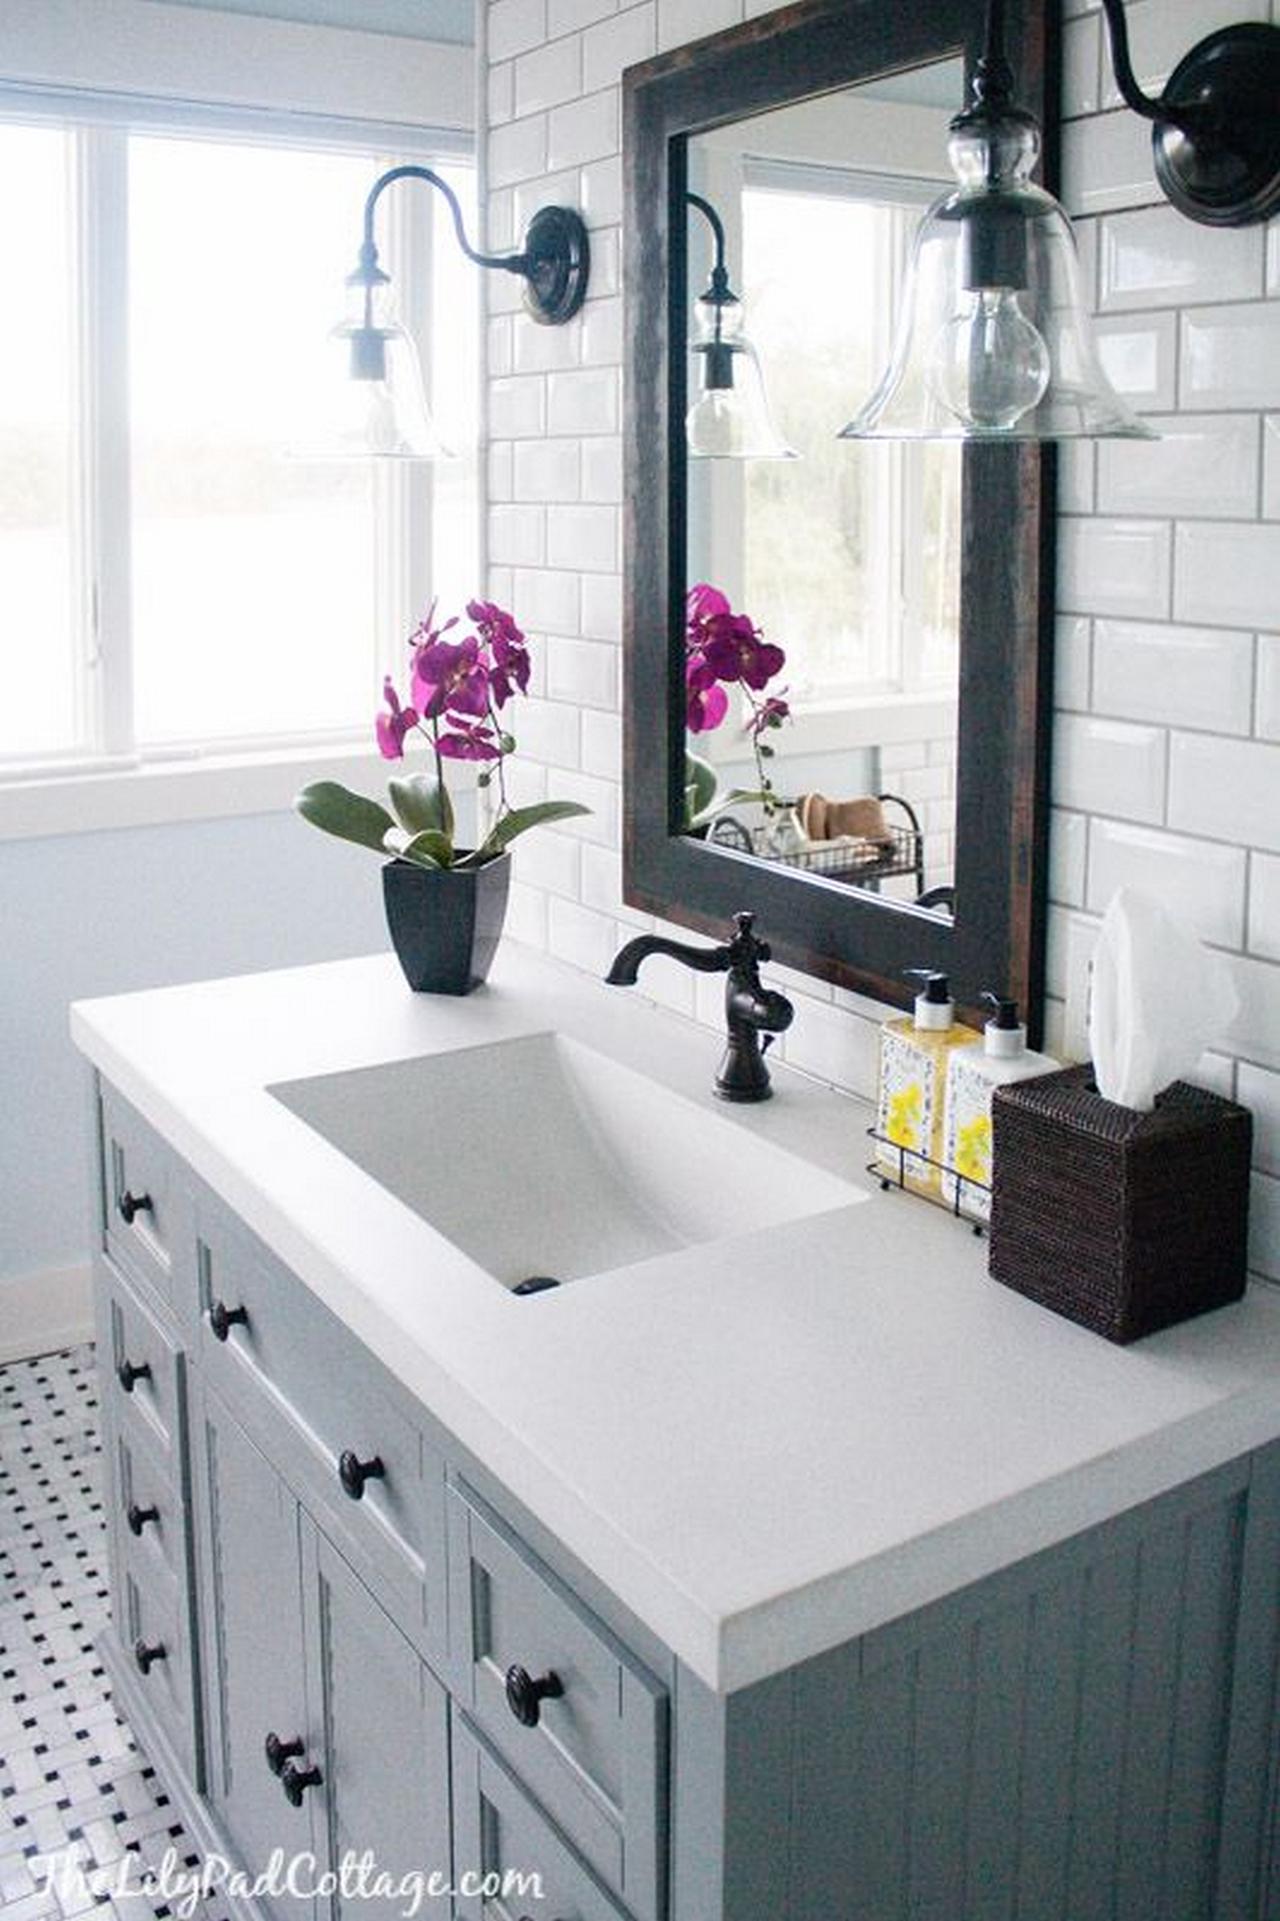 25 Best Bathroom Decor Ideas and Designs for 2018 3  The Classic Black and White Theme